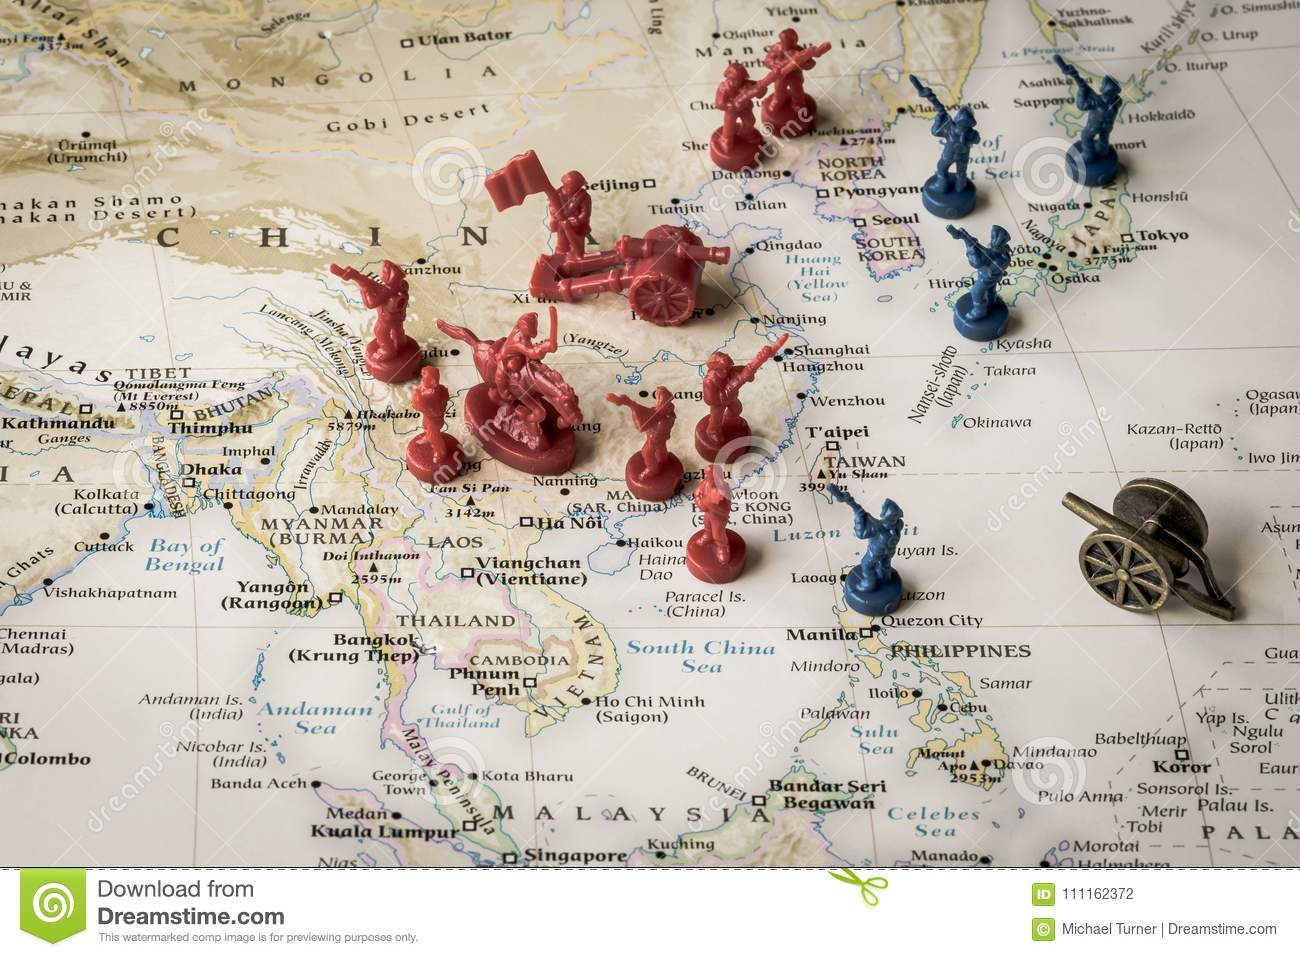 Map Of China And Surrounding Areas.Map Of The South China Sea And Surrounding Area Stock Photo Image